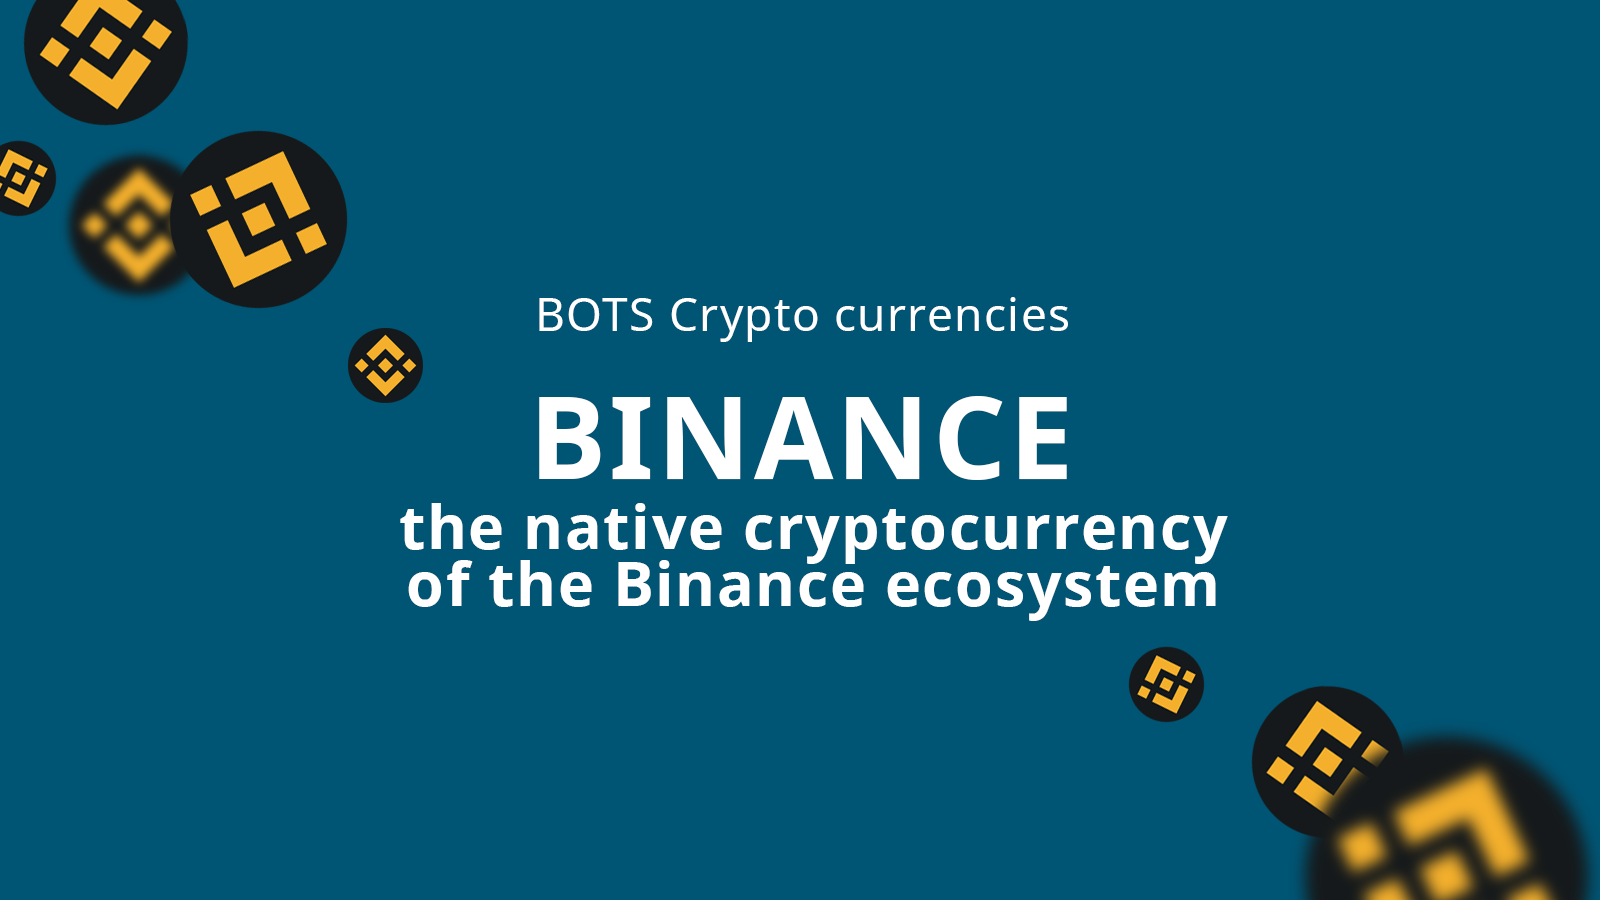 BNB: the native cryptocurrency of the Binance ecosystem